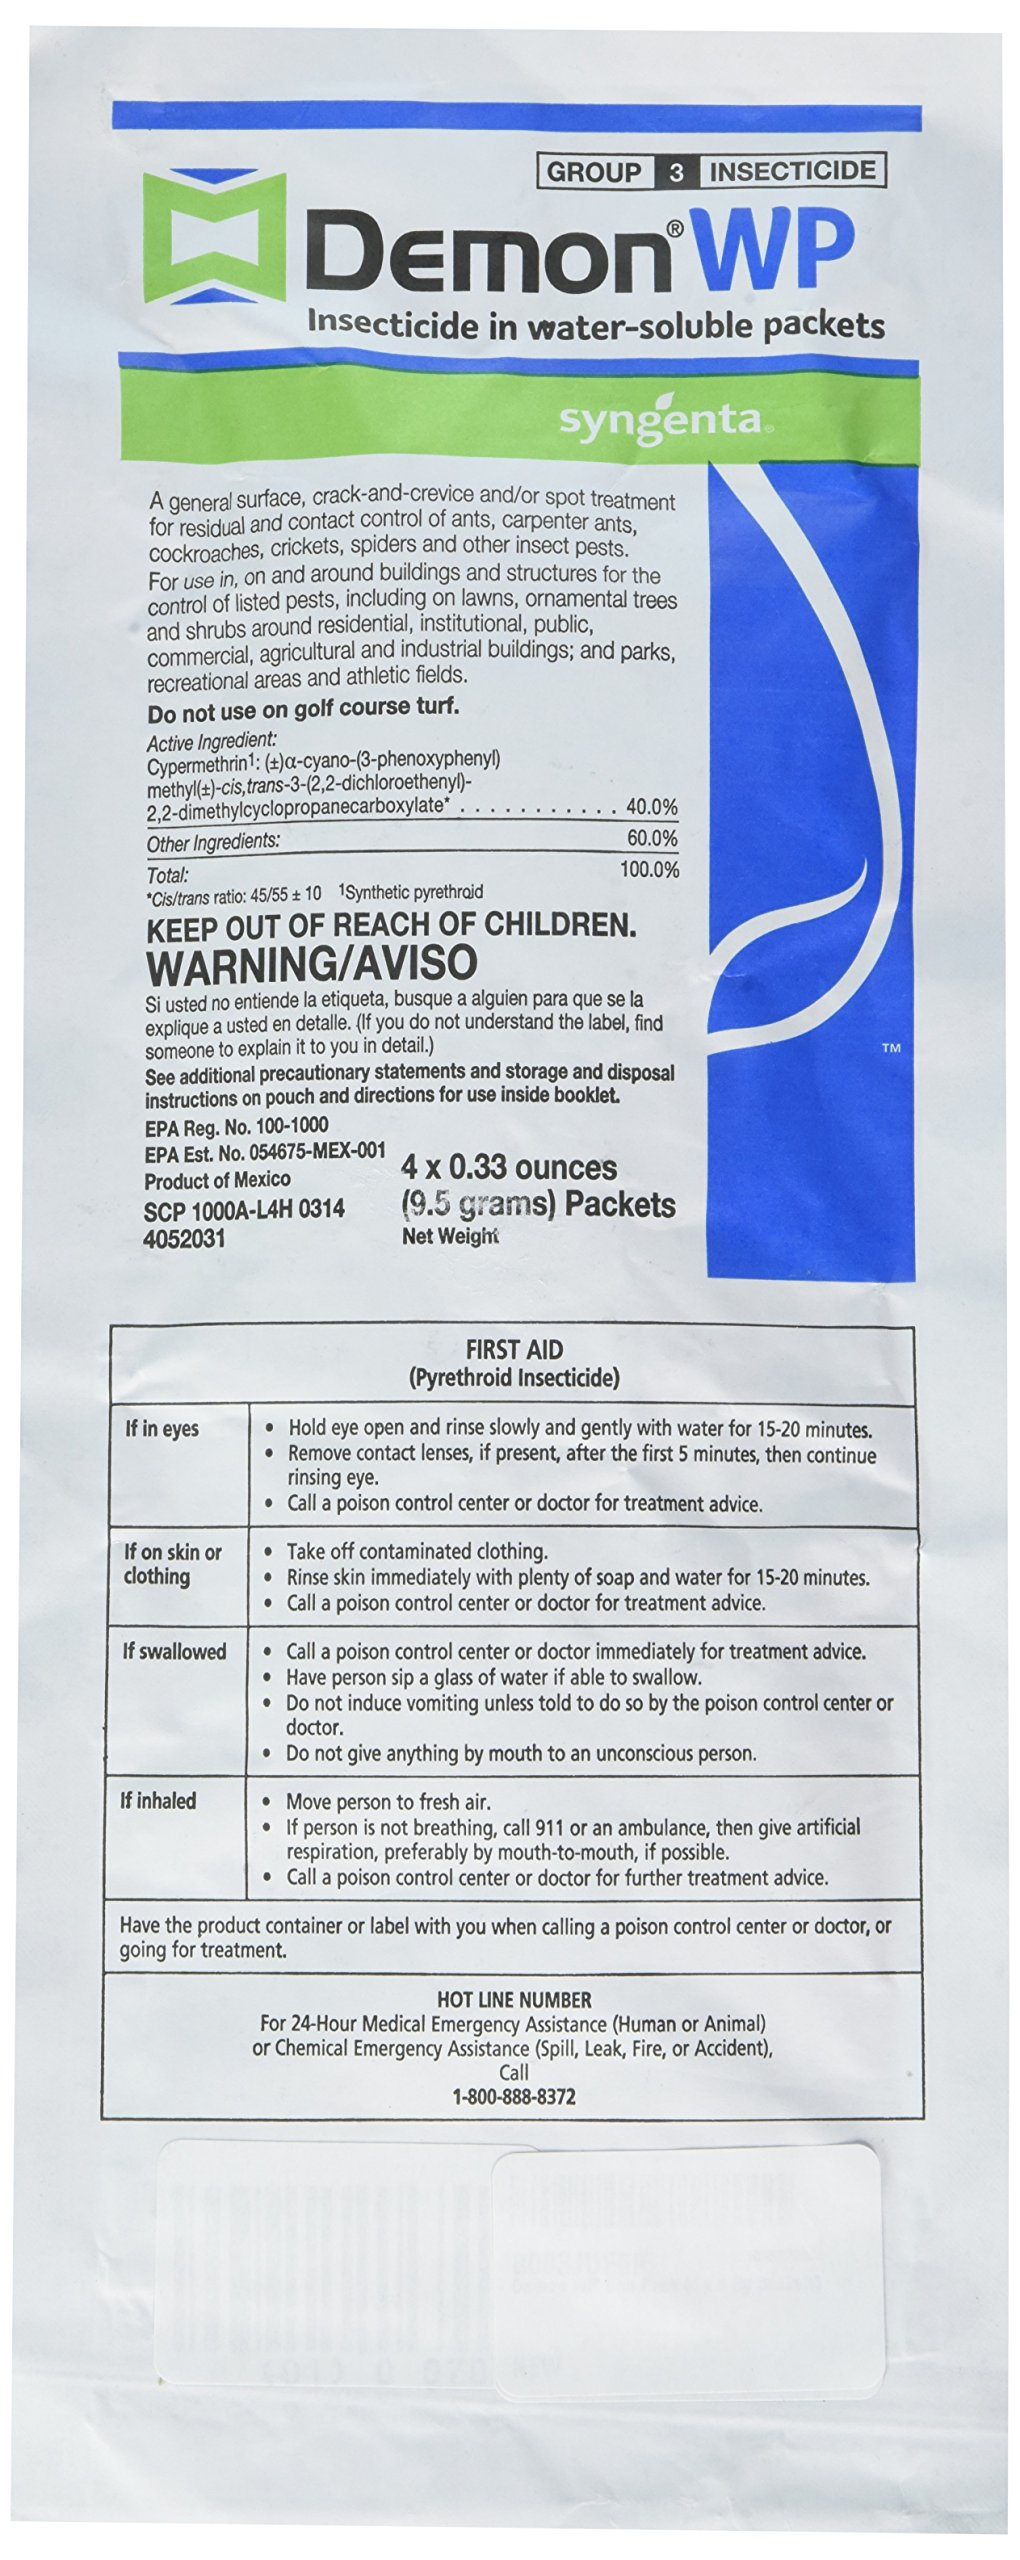 Syngenta - H-AP-2319890 - Demon WP  Insecicide, 1 Envelope (9.5g) containing 4  (0.33 ounces) packets by syngenta